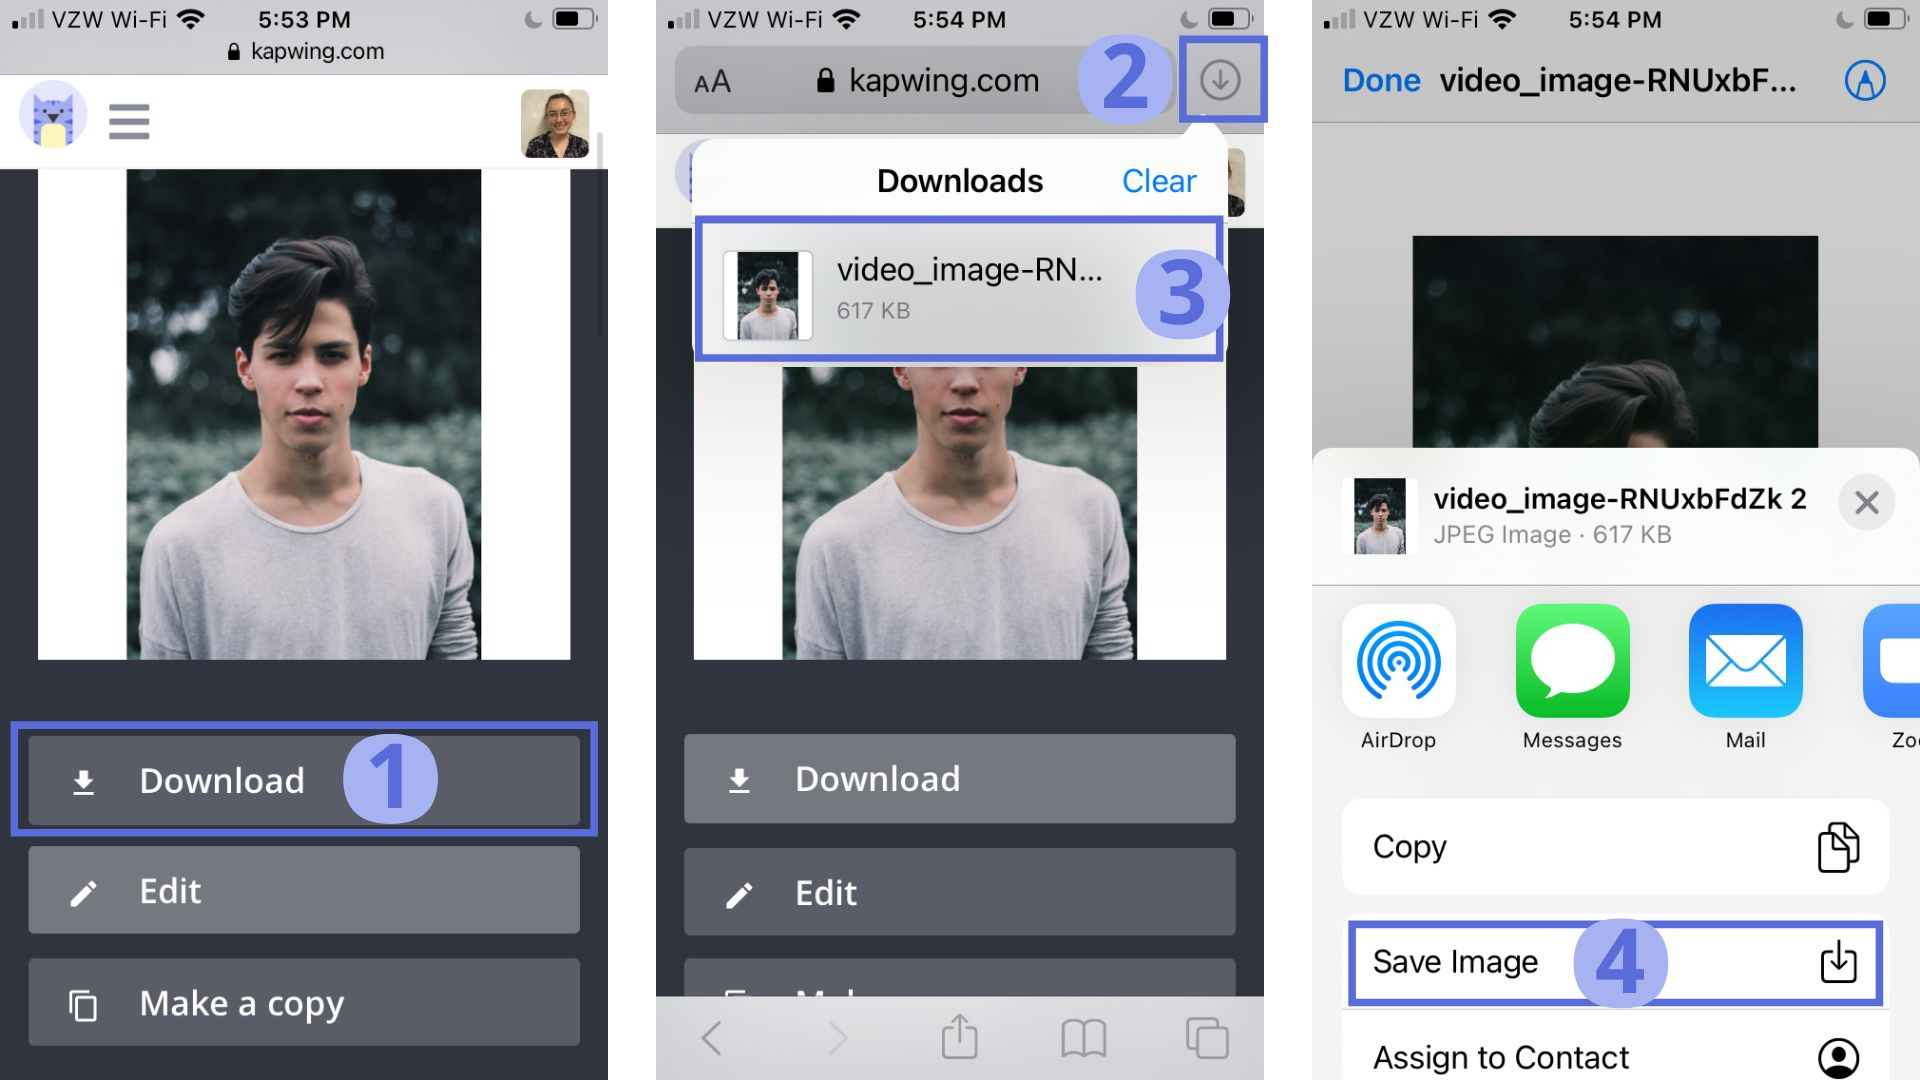 Screenshots from Kapwing, demonstrating how to download and save a photo to a mobile device.